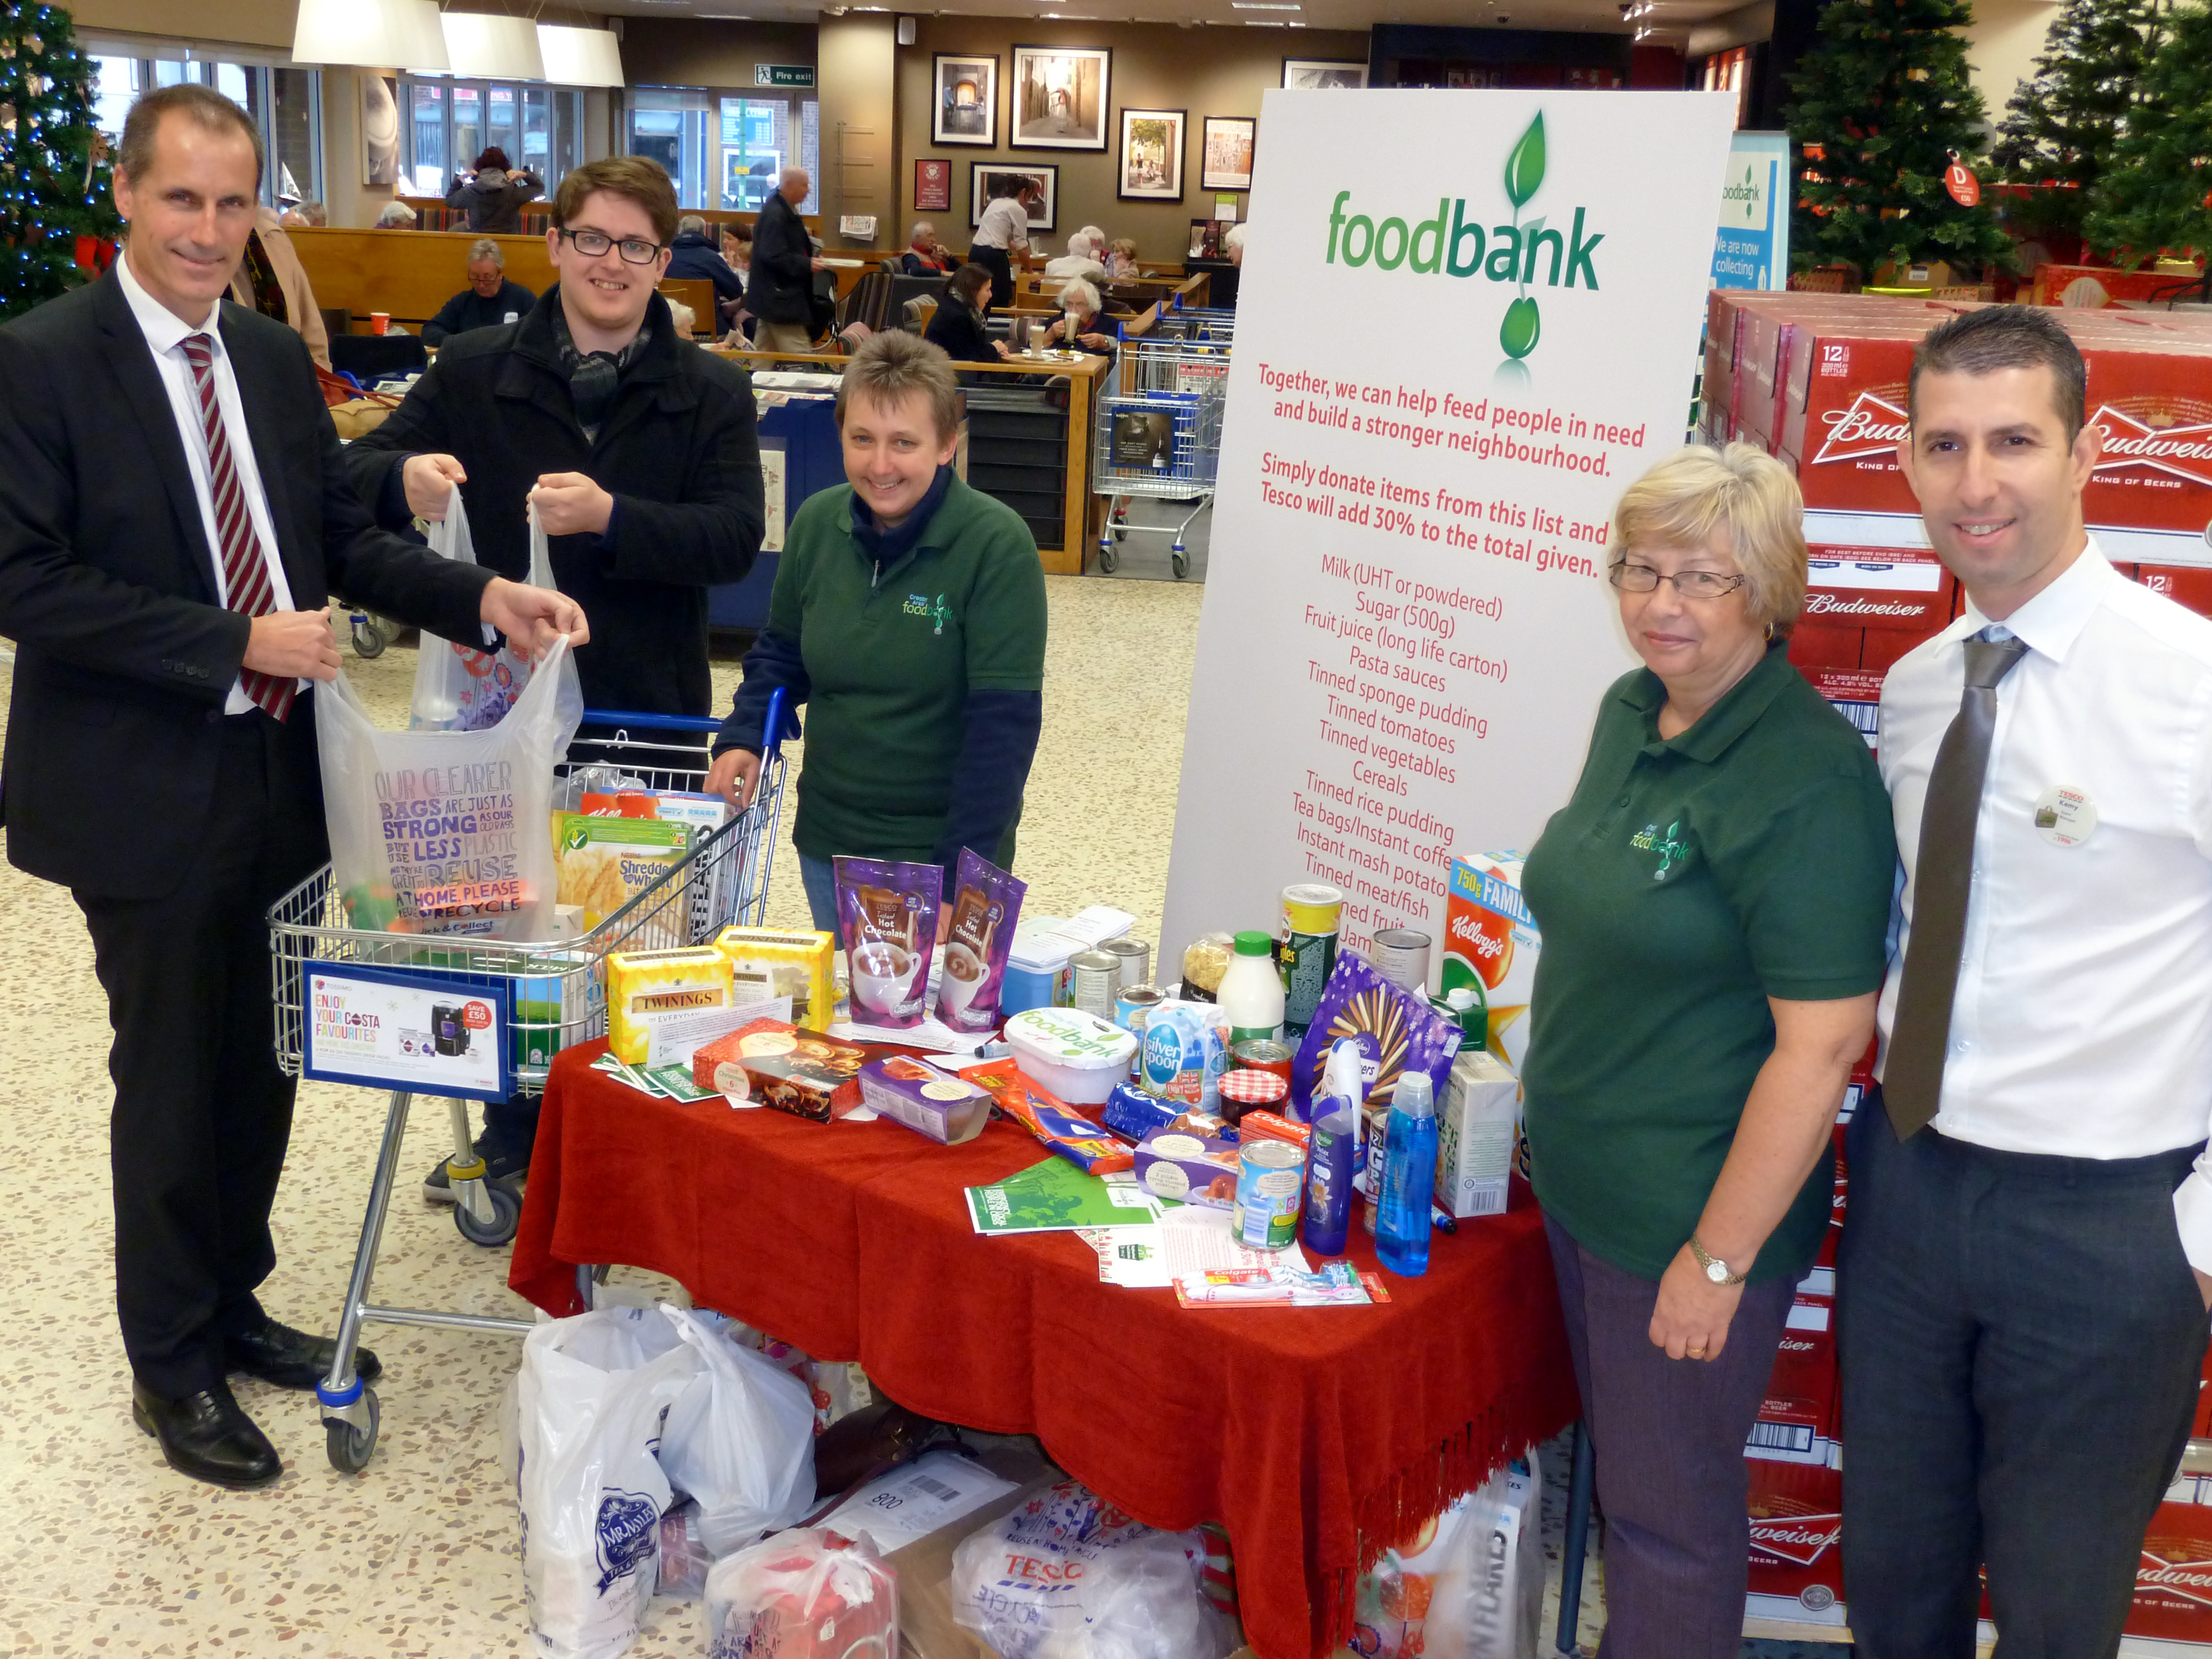 Sefton Central Labour MP Bill Esterson and Formby Labour Action Team's Tom Donnelly with Formby Tesco store manager Kemy Lassami and Crosby AreaFoodbank's Jean Gamble and Mavis Evans.